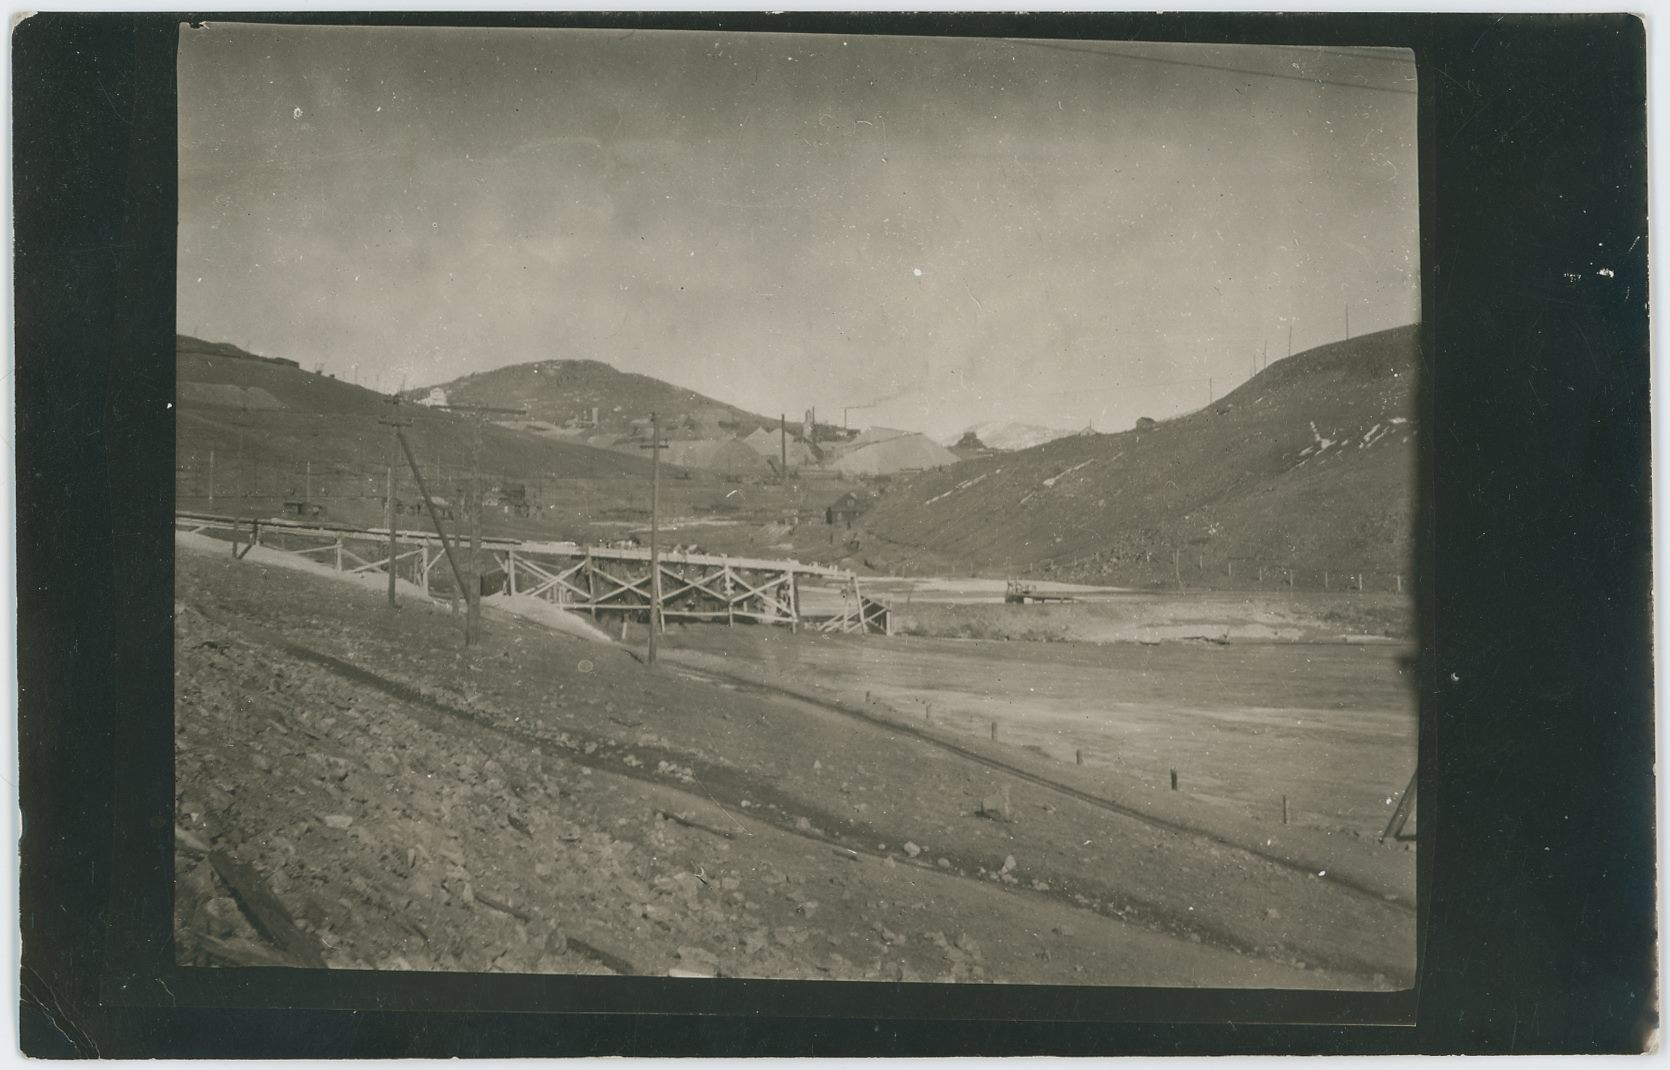 Sadly, not the best quality view, blurred, possible due to the copy nature of this view? The view itself is from the Slime Dam below/east of the Independence Mill, possible by time this view was made, also known as the Portland-Independence Mill – can't tell for sure as I have no date on this view. It is looking up the valley where Wilson Creek ran, Bull Hill/Cliffs in distant background.    * The covered Head-Frame of the Vindicator No. 1 Mine appears to be visible about center sideways and about 2/5 down from the top.    * Smokestack of the La Bella Powerplant Structure is also seen, just left and below of the before mentioned Vindicator.    * The Black Sampler, or Cripple Creek Sampler upon Victor Pass is seen about 2/5 down from the top and about 3/7 in from the right-hand side.    * The Eagle Sampler is seen also about 2/5 down from the top and about 1/4 in from left-hand side, seen as a whitish structure against the background hill.